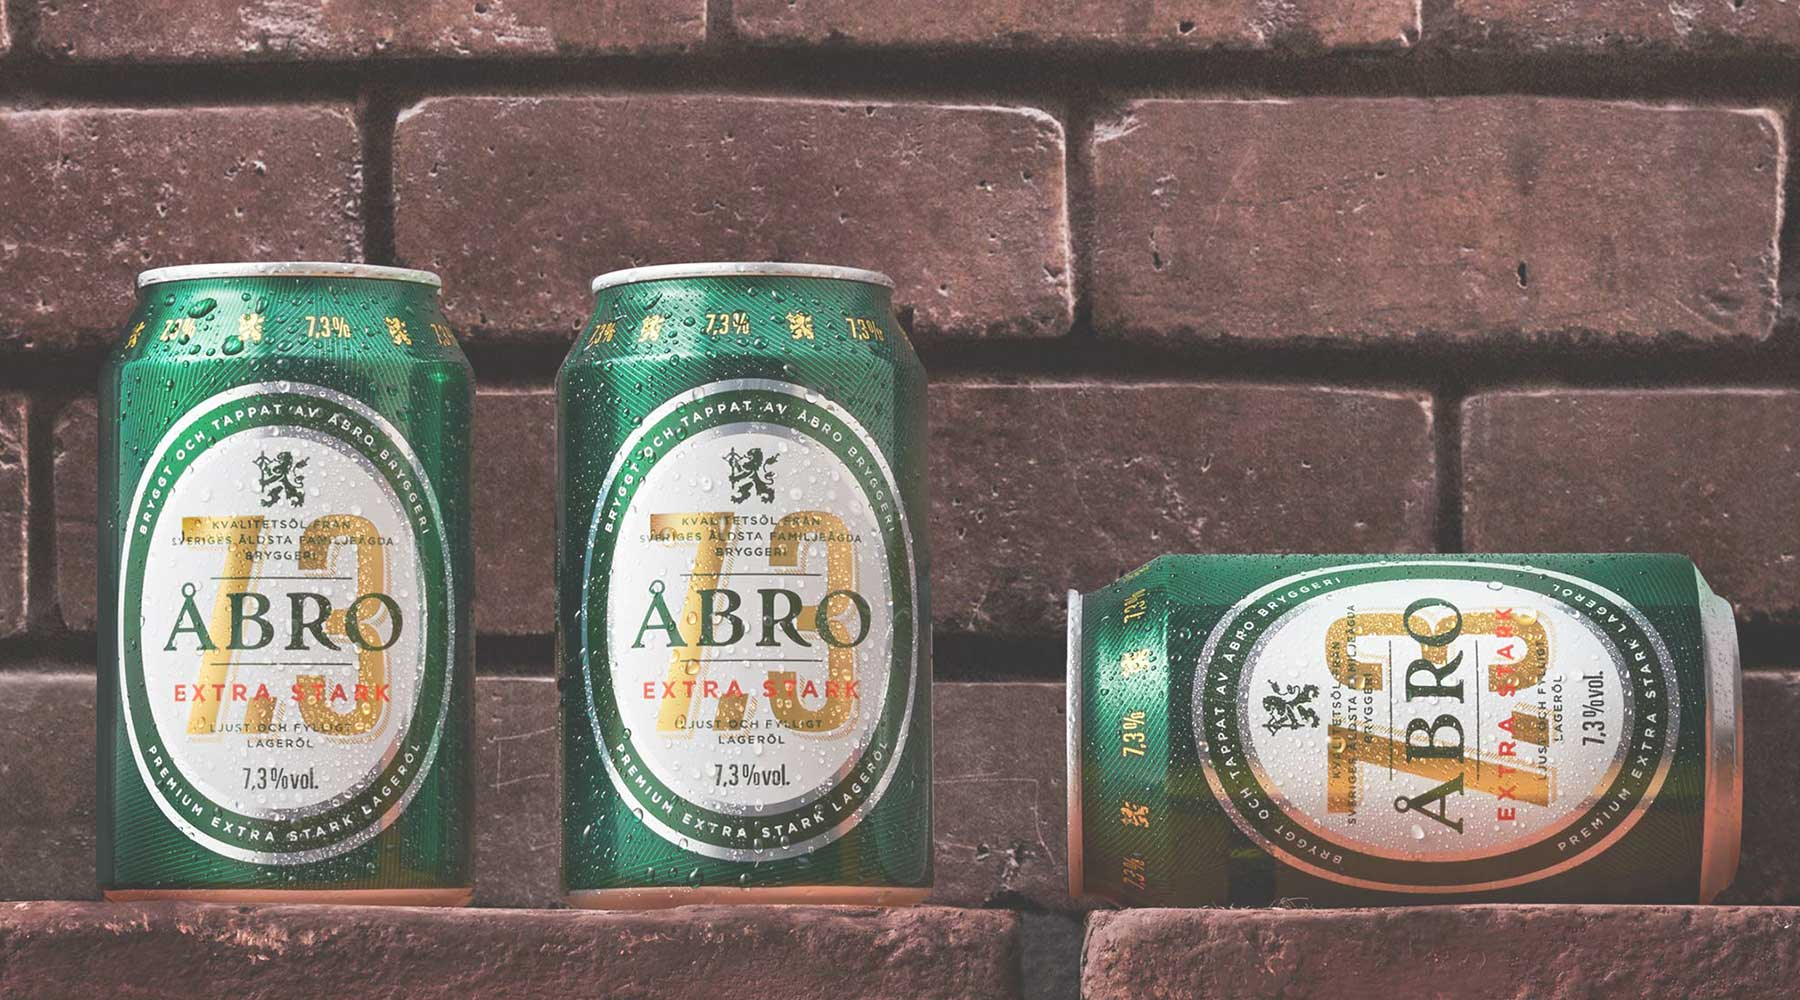 Åbro Brewery | Just Wine